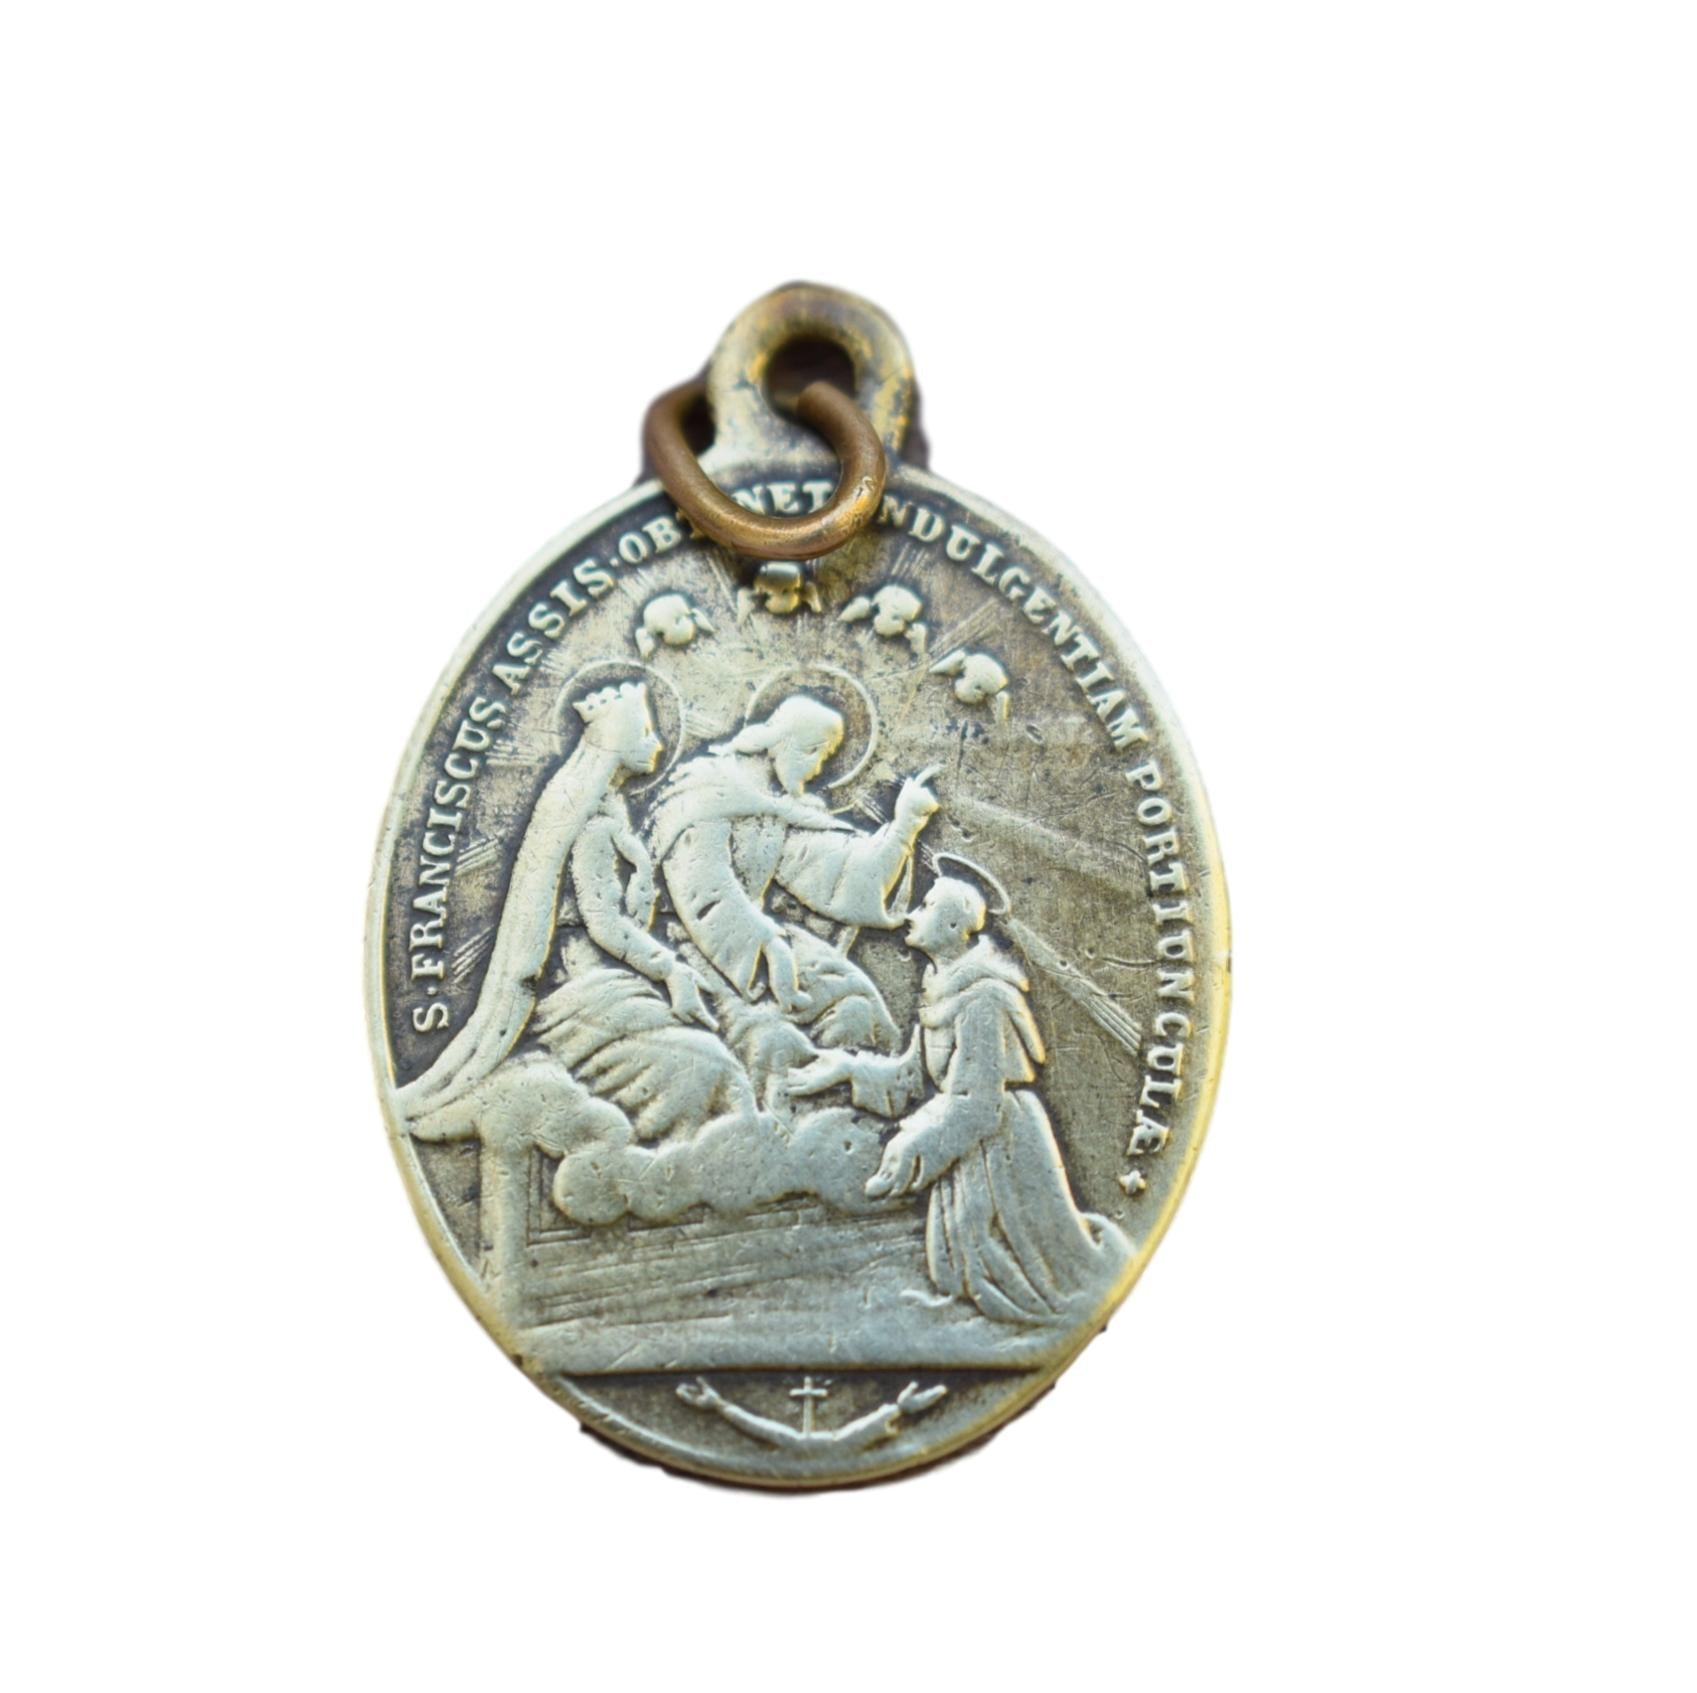 Angelorum de Portiuncula Mary Indulgence Medal - Saint Francis of Assisi Pendant - Antique French Religious Medal Catholic Pendant